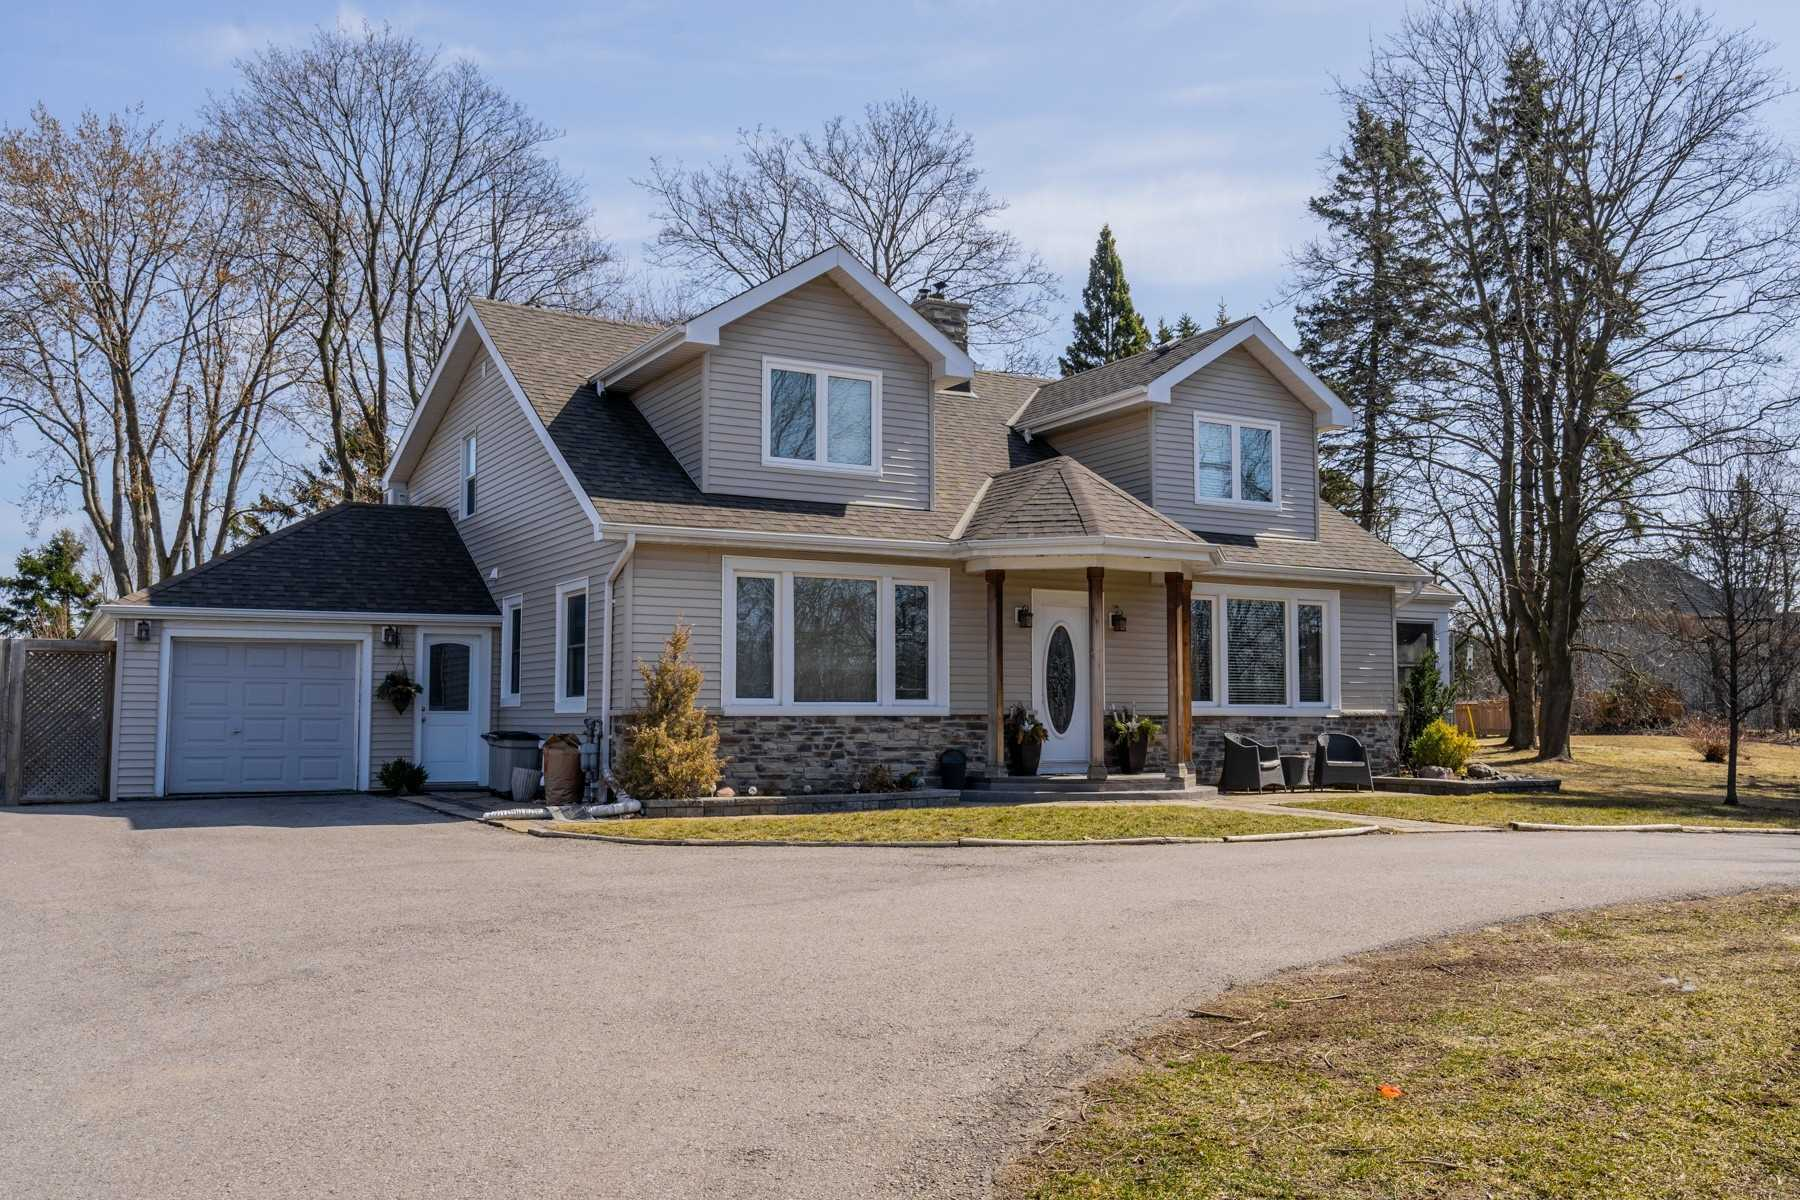 Stunning Luxury Home On A Builder Friendly Lot! Over An Acre Of Prime Development Land In Sought After Rosebank. 200 Ft Of Frontage = Potential To Divide Into 5 Lots. Spacious Home Features A Family Friendly Layout, Massive Primary Suite, Walk Out Basement W/ Rec Room And Workshop. This Location Provides The Perfect Balance; Located Steps To The Waterfront And Nature Conservation Areas And Mere Minutes From Go Train And Shopping Centres.